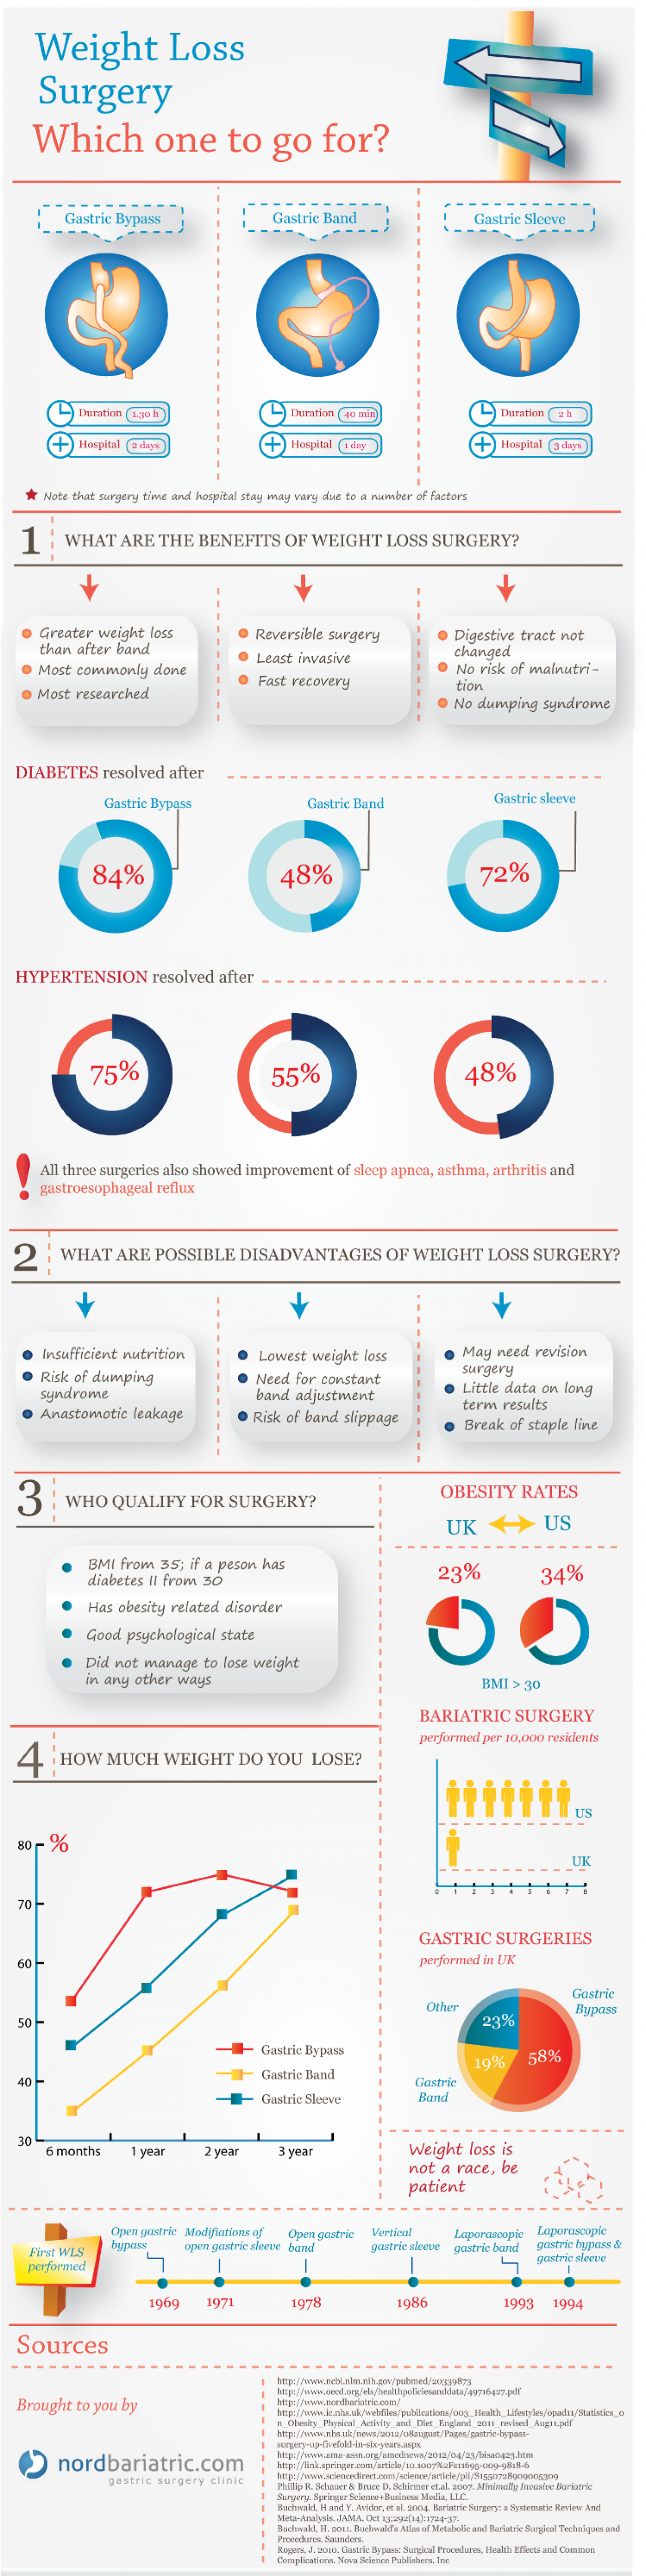 Weight Loss Surgery Comparison Infographic